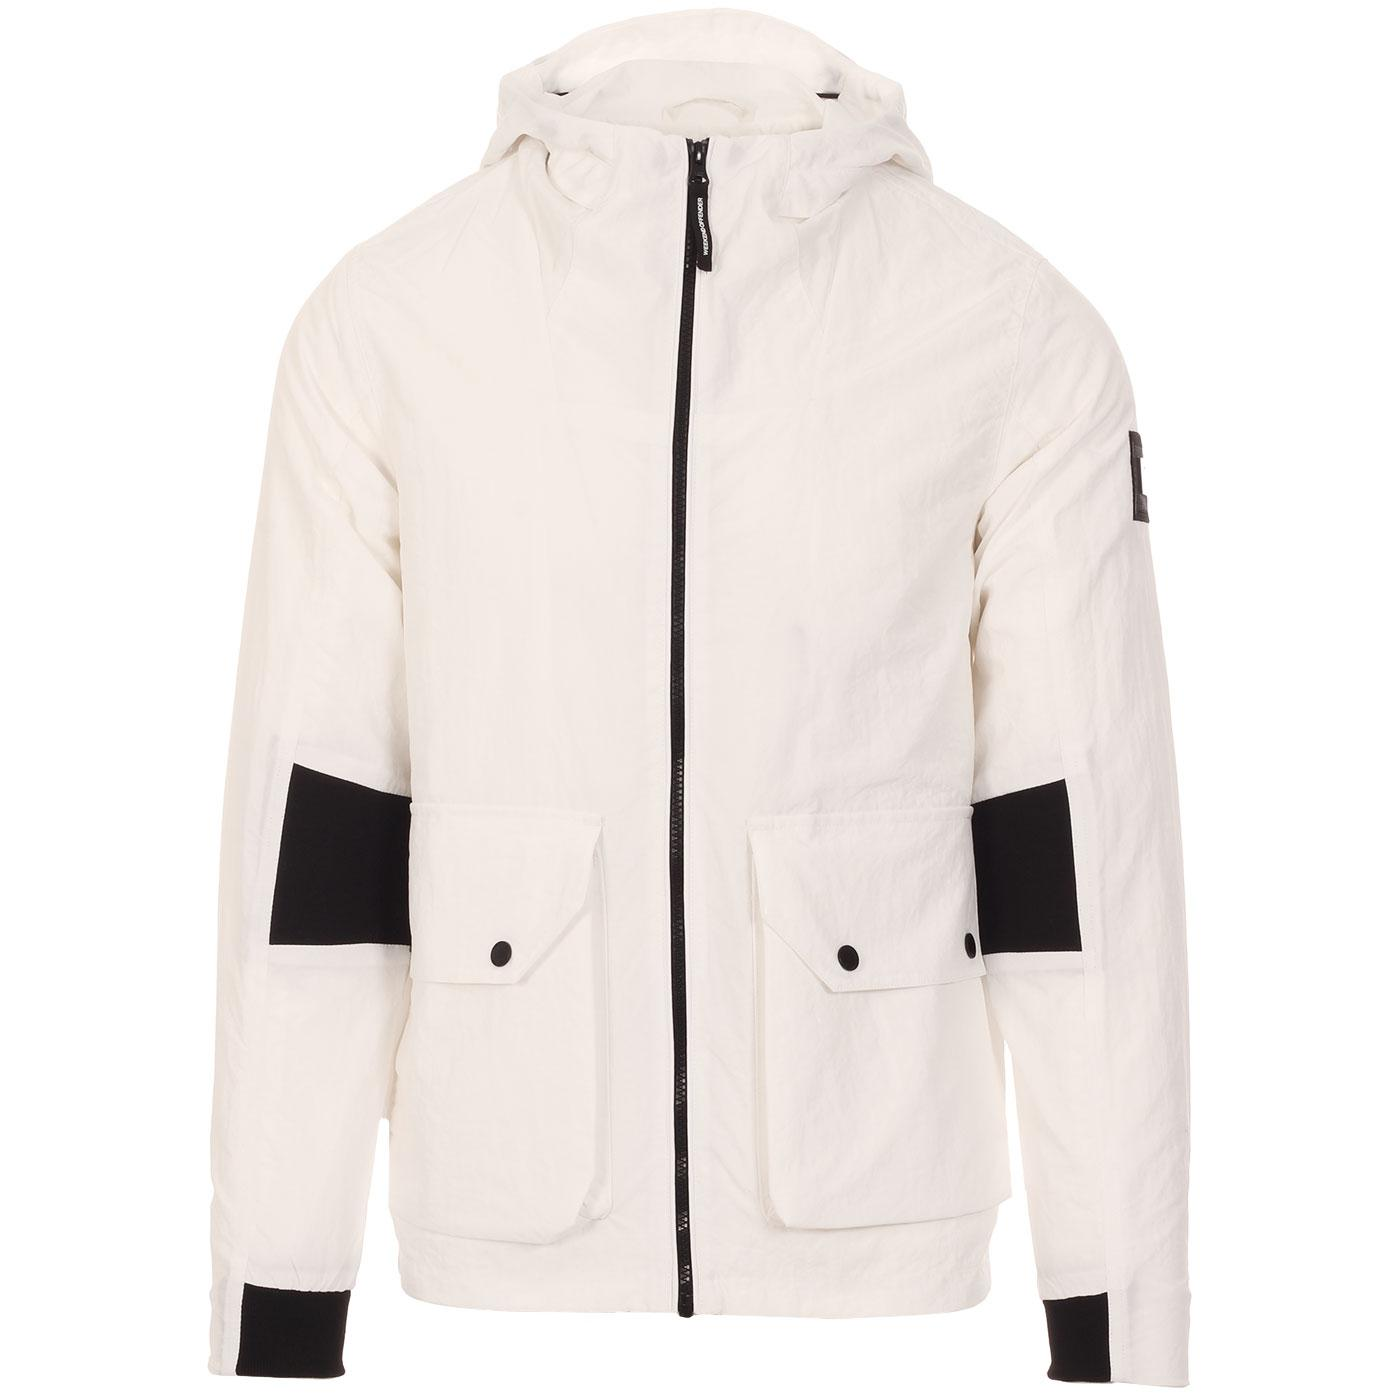 Valencia WEEKEND OFFENDER Retro Hooded Jacket (P)